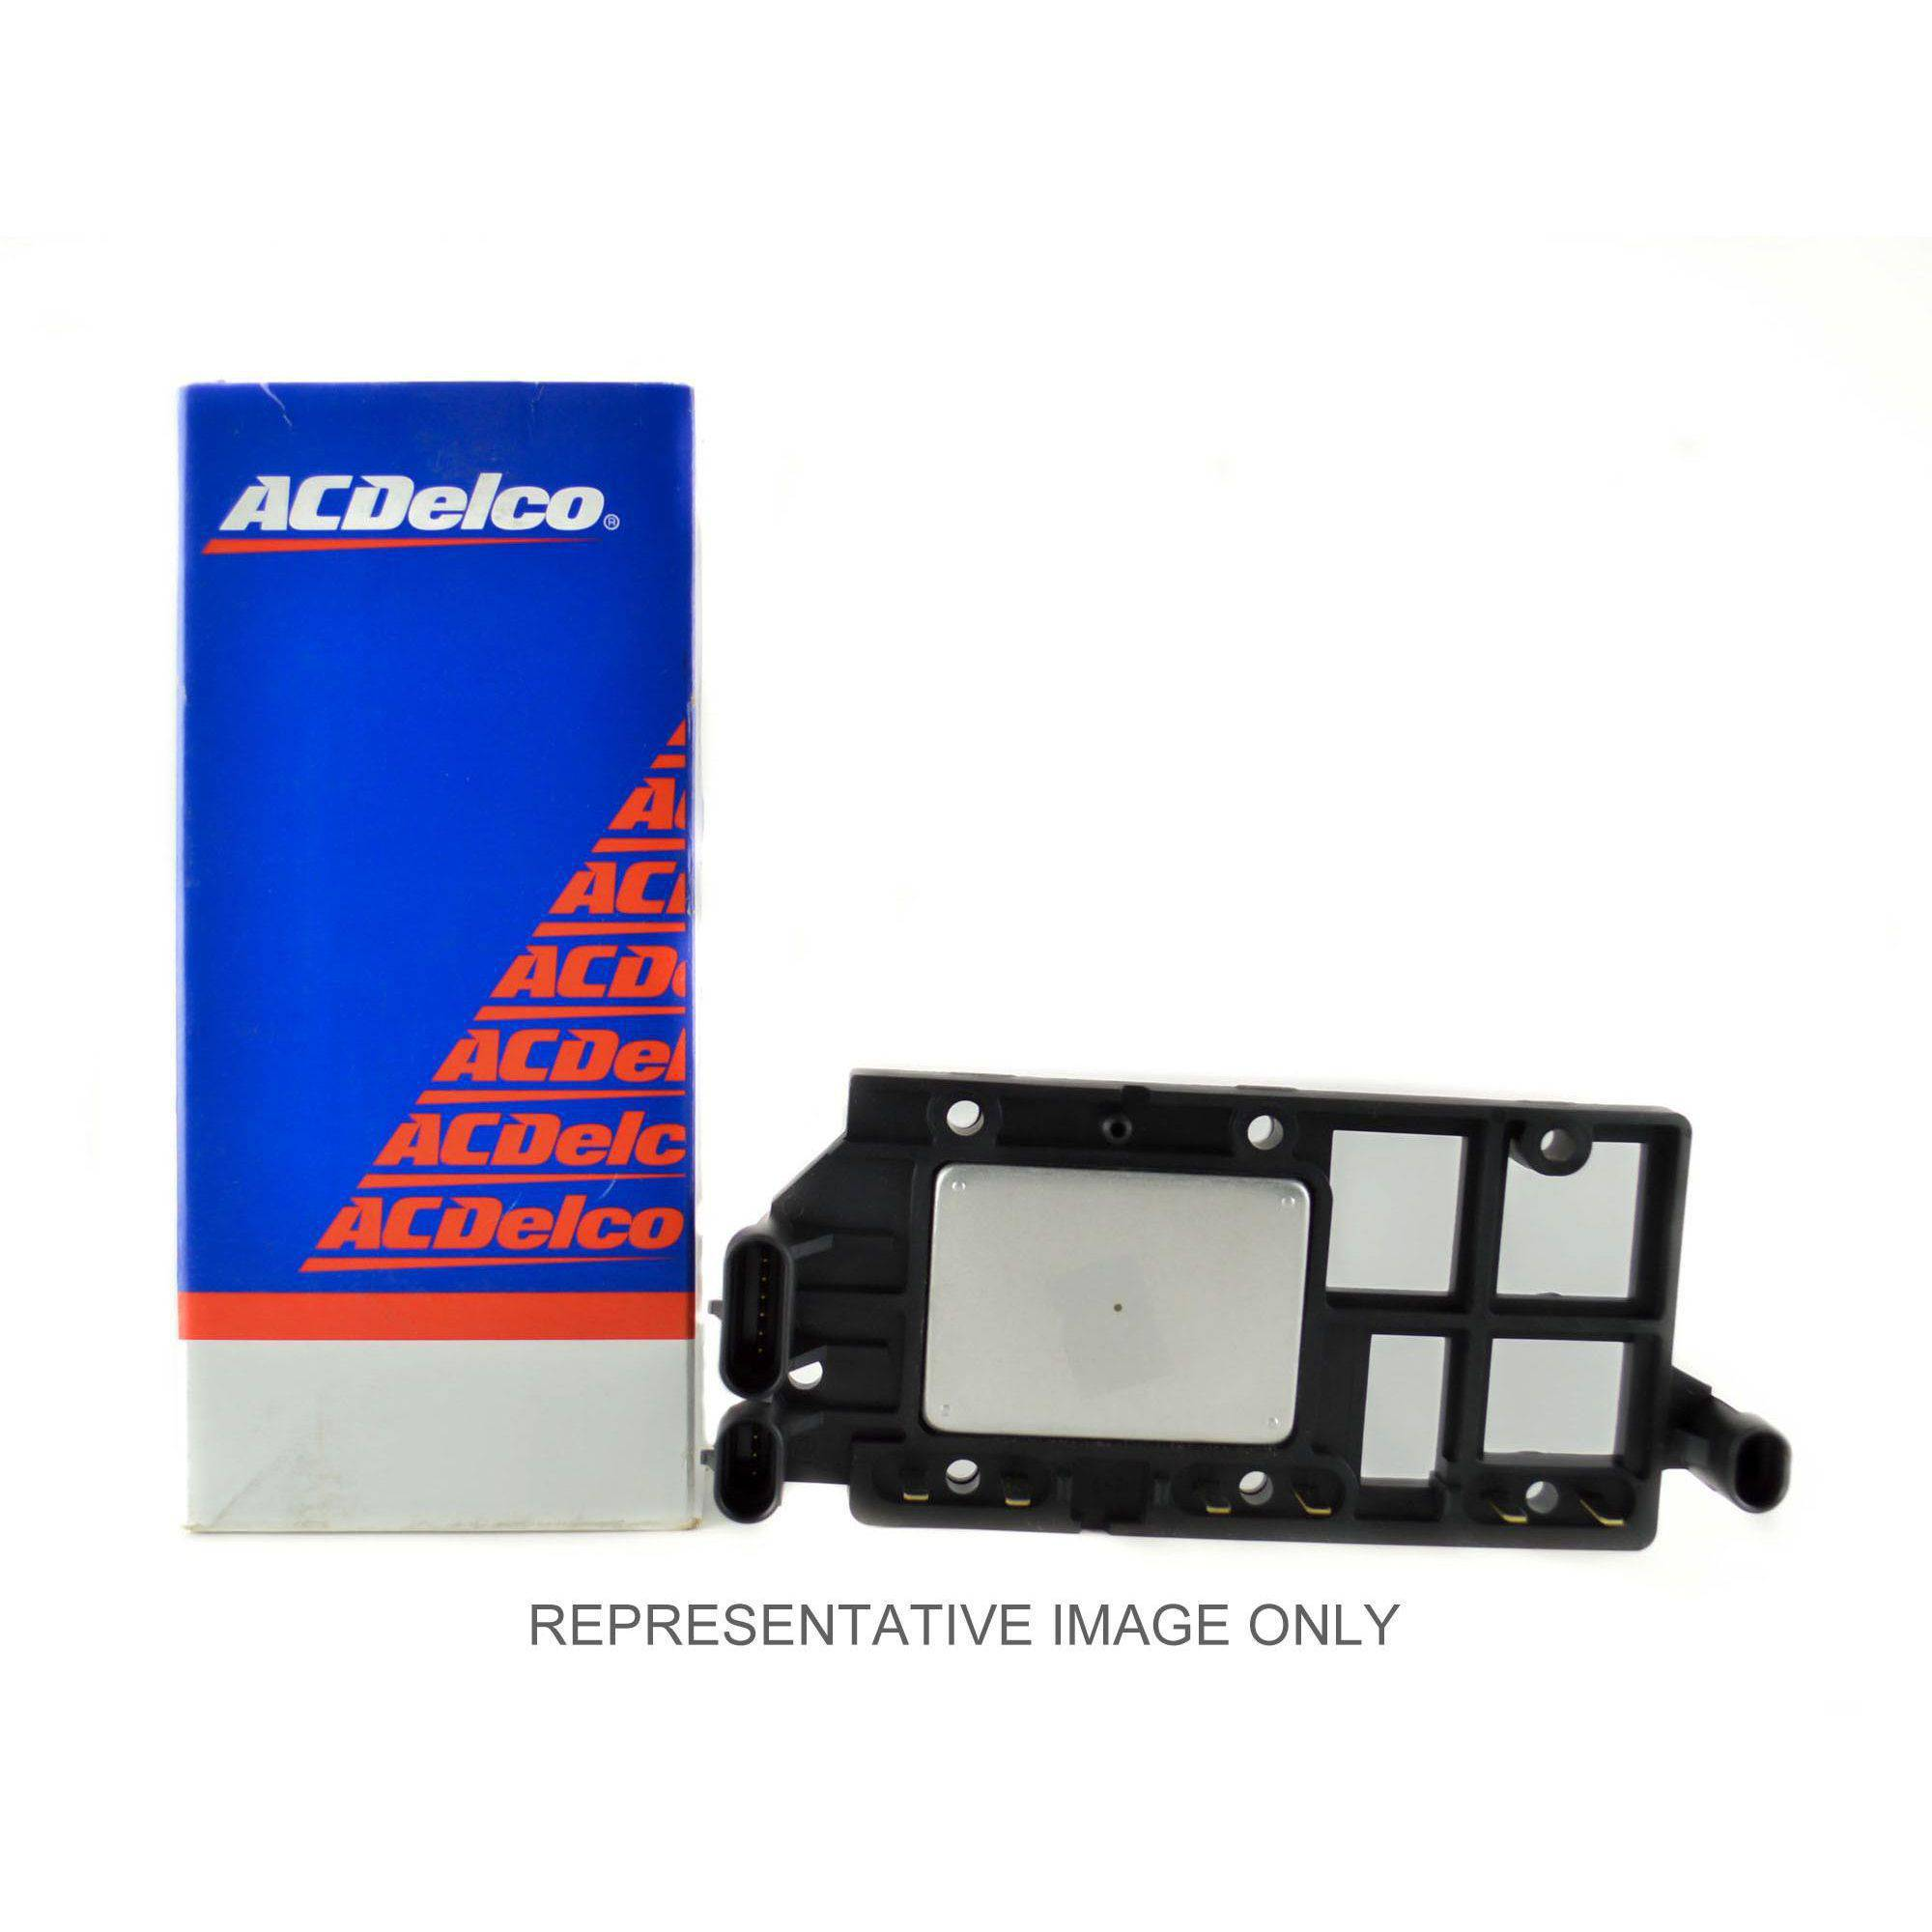 ACDelco D1977A Ignition Module by ACDelco